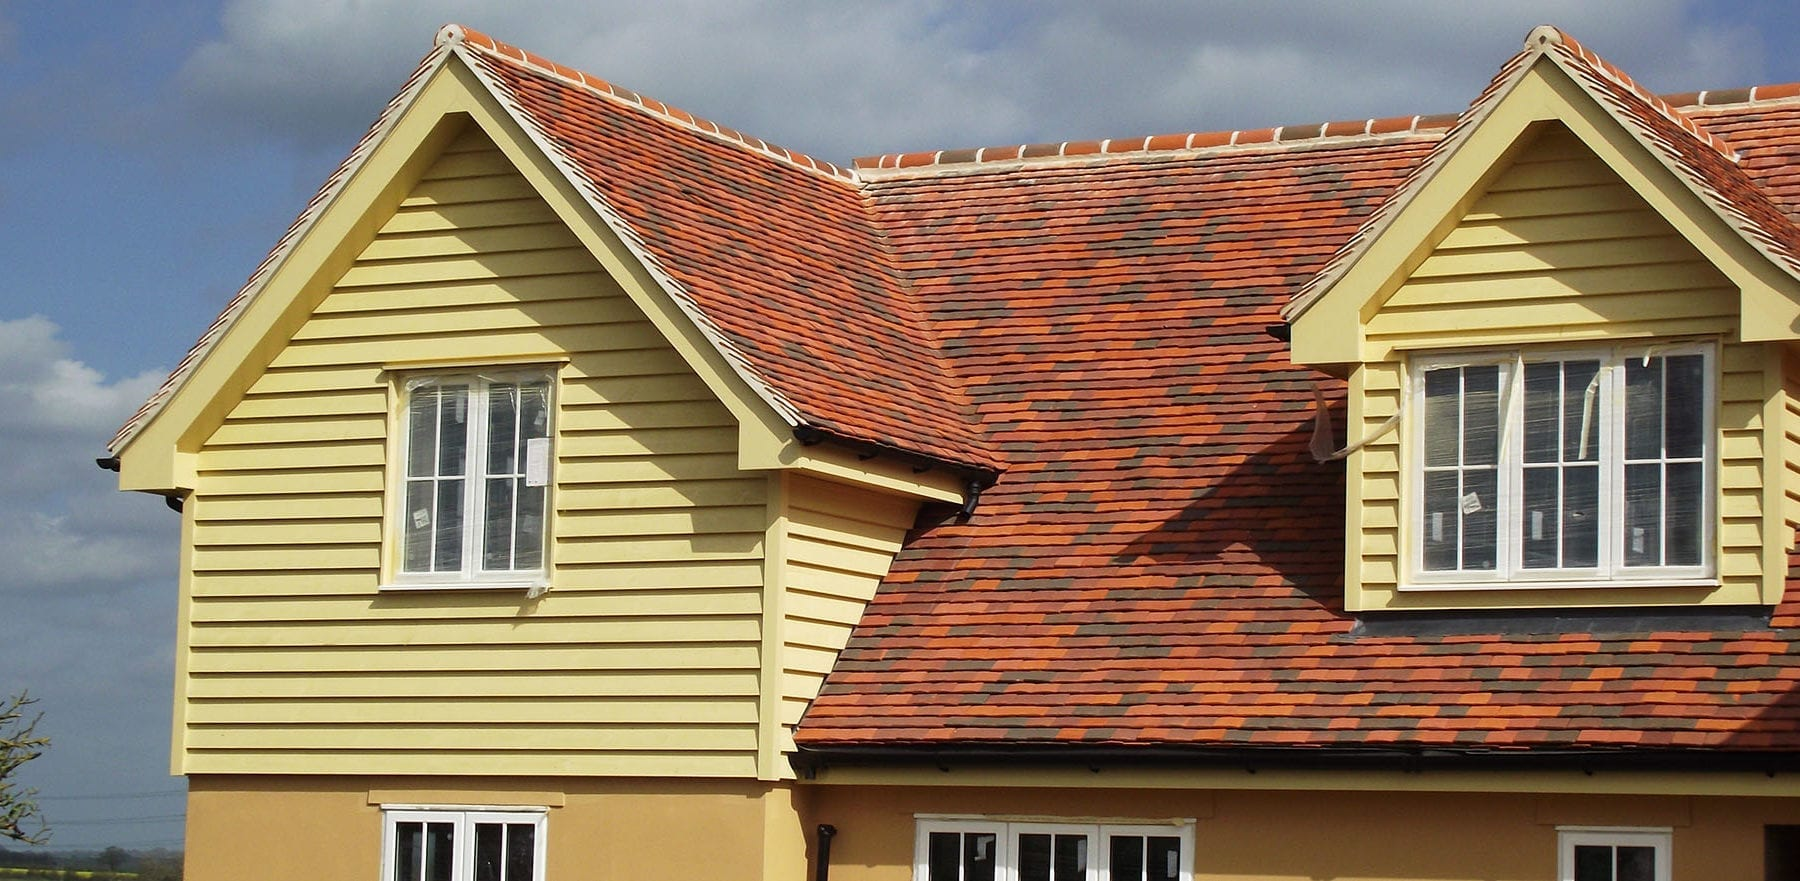 Lifestiles - Handcrafted Tilehurst Clay Roof Tiles - Clavering, England 3